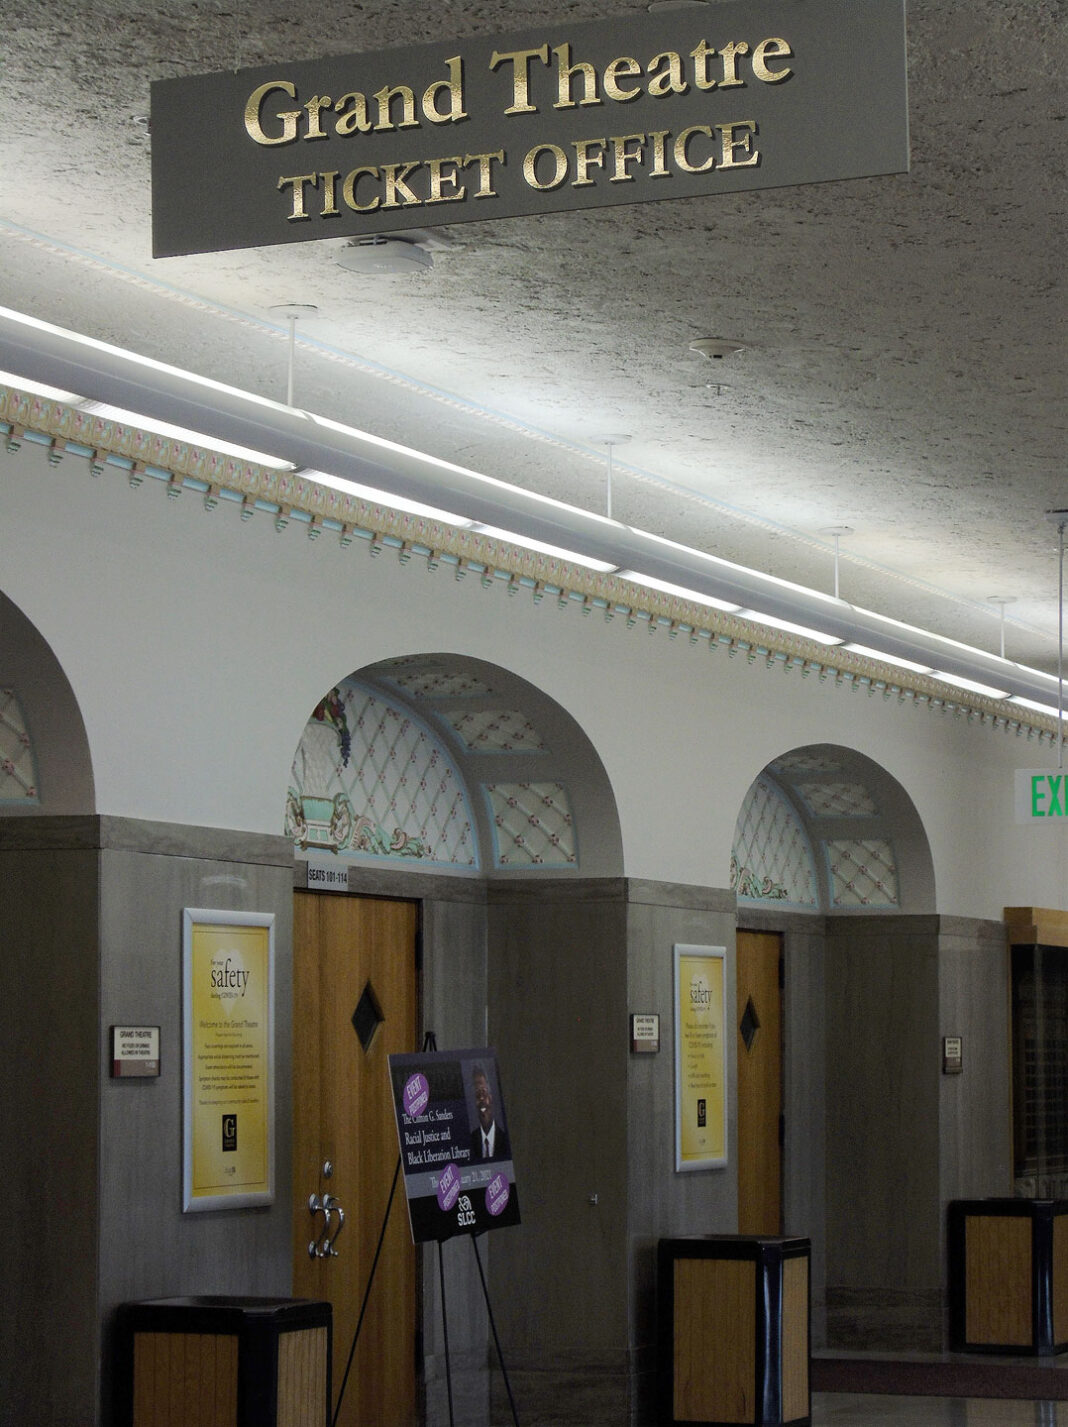 Entrance to The Grand Theatre